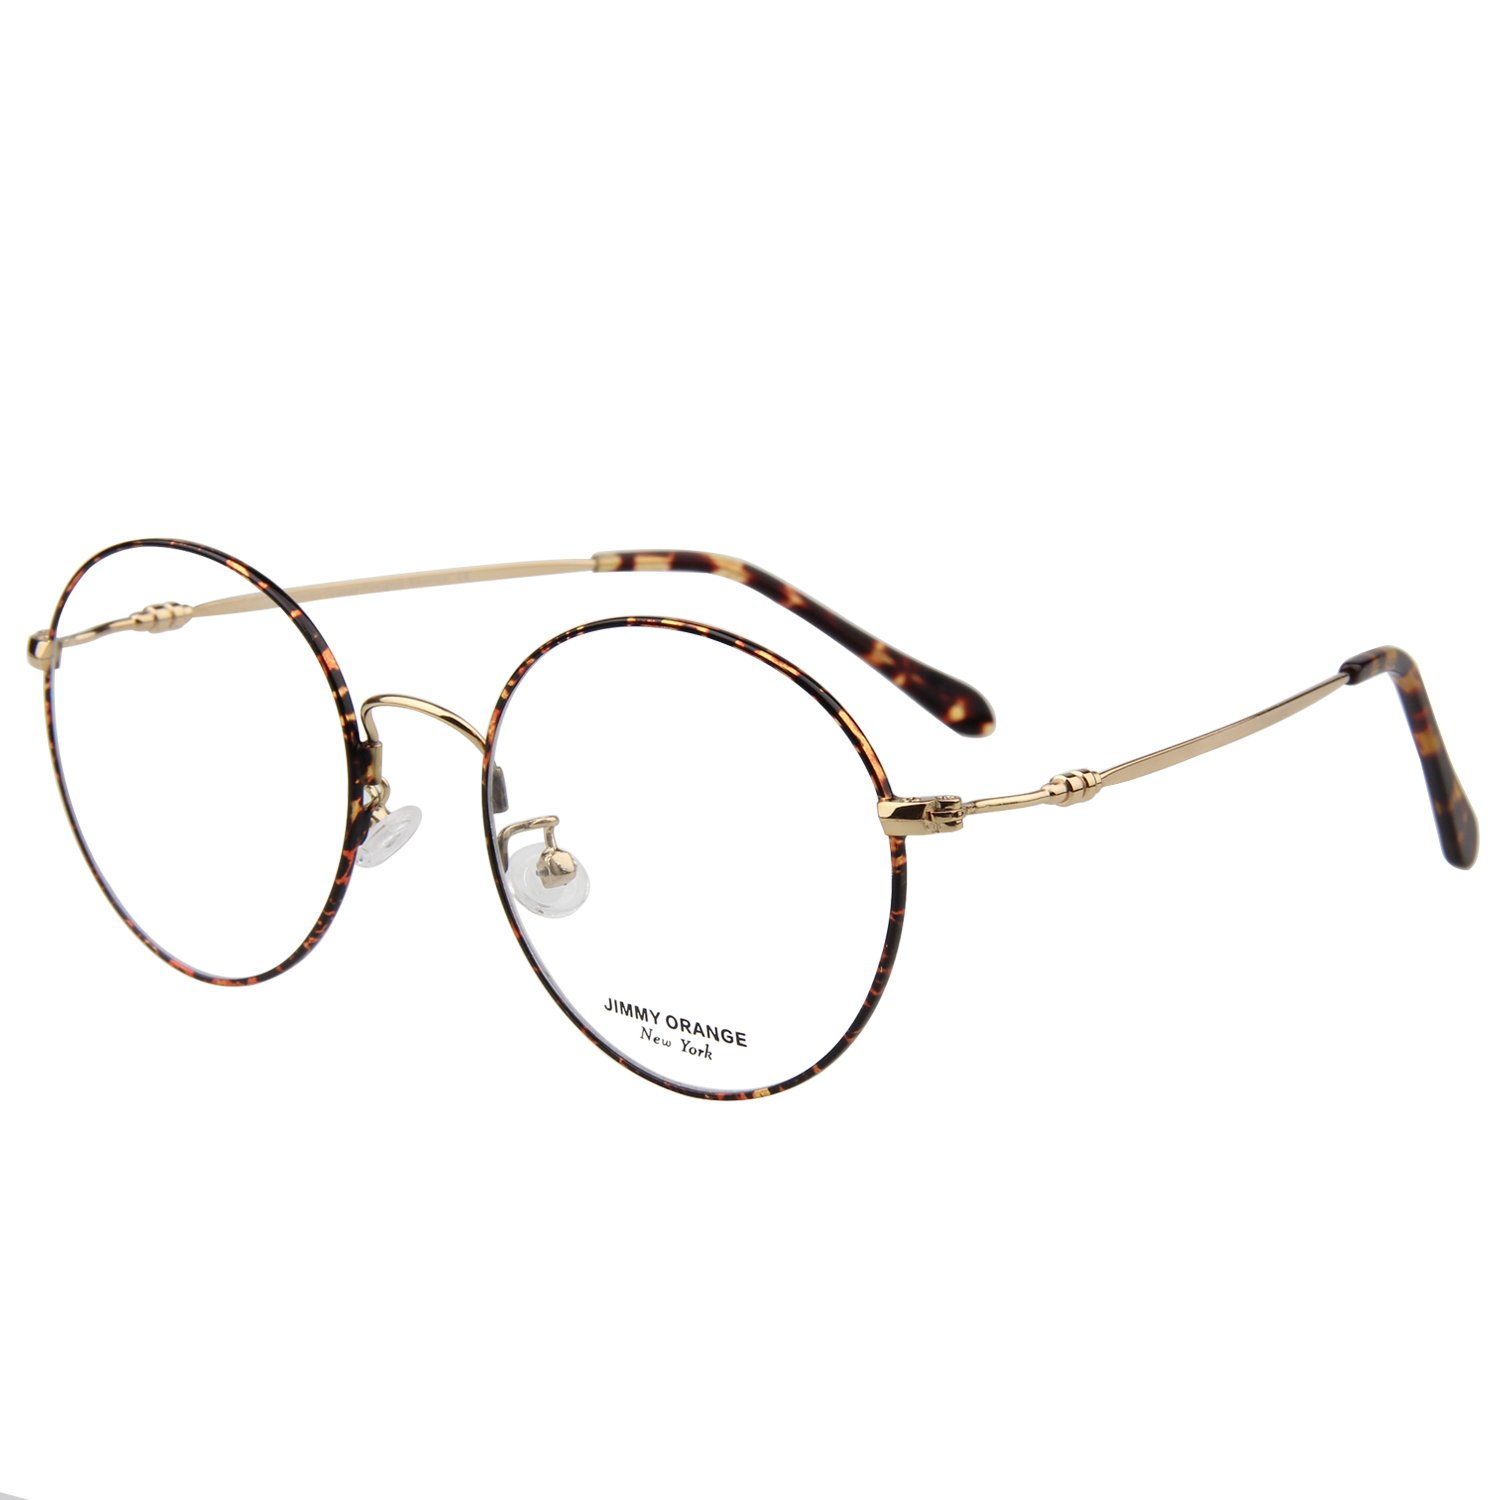 cb485b2d5807 Amazon.com  JO Designer Oversized Women s Round Glasses Mens Metal Optical  Frame JO5214 Leopard  Health   Personal Care